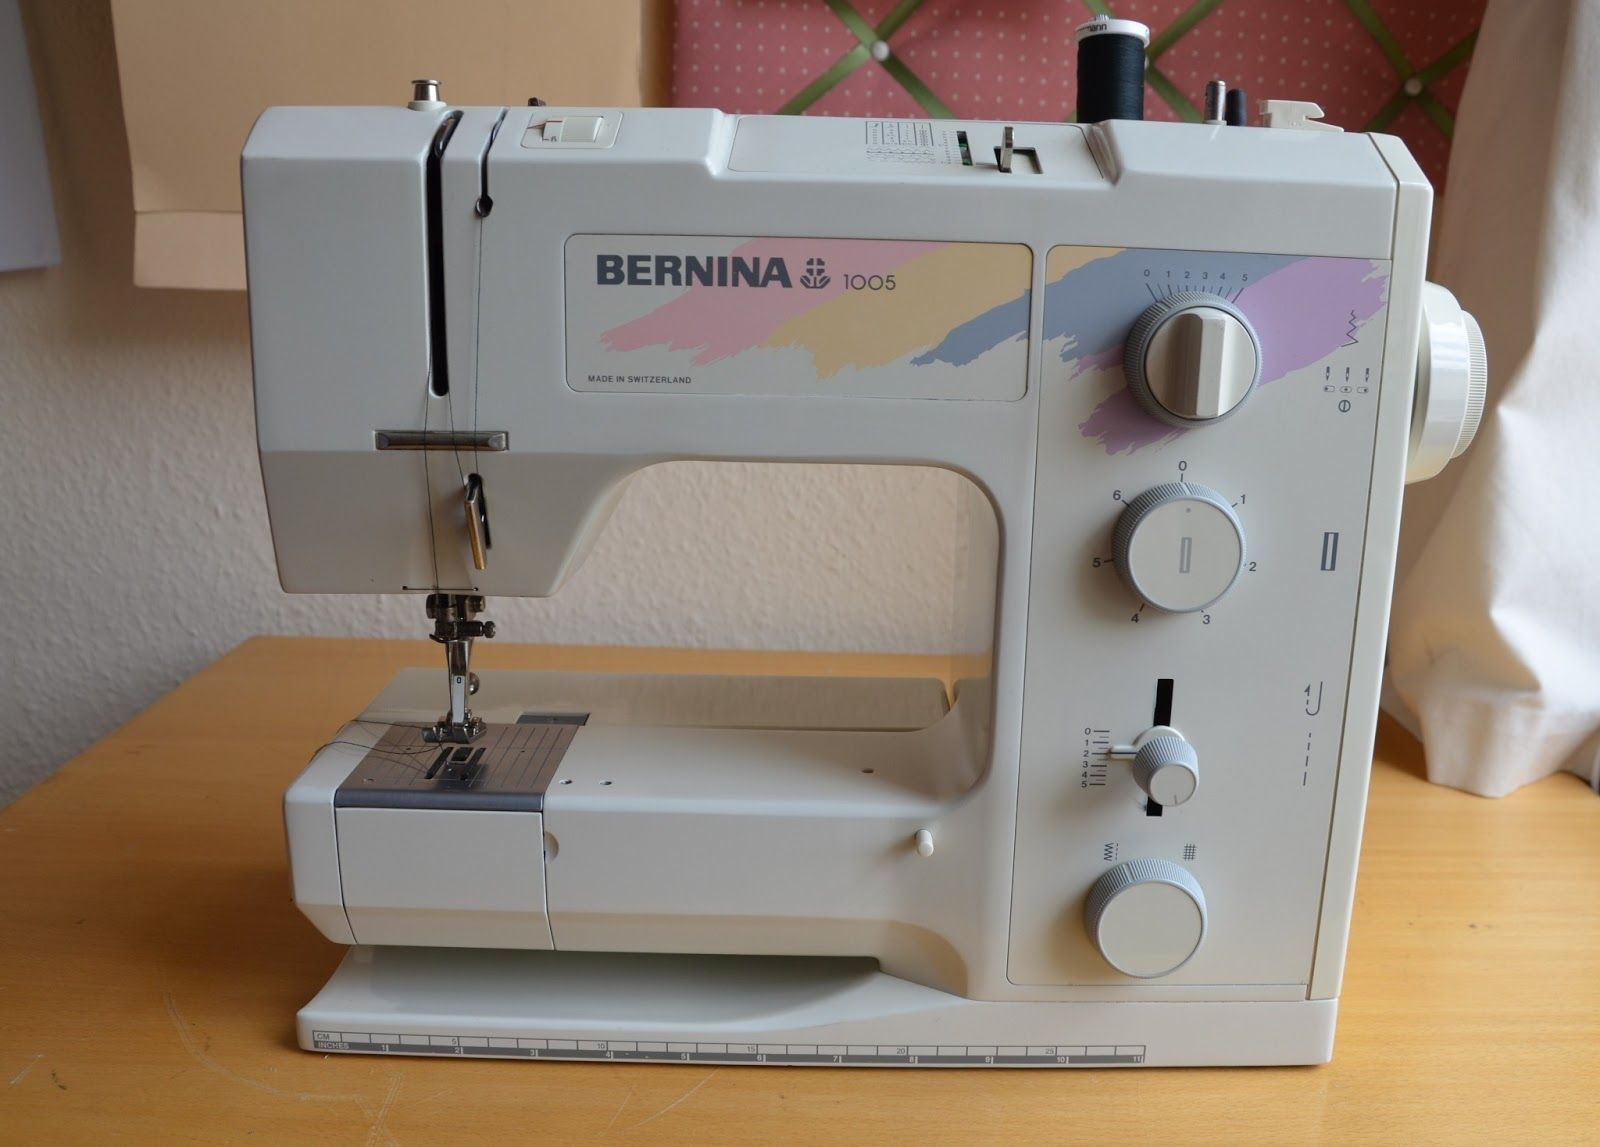 Bernina 1005 Sewing Machine There are a wide variety of sewing ...